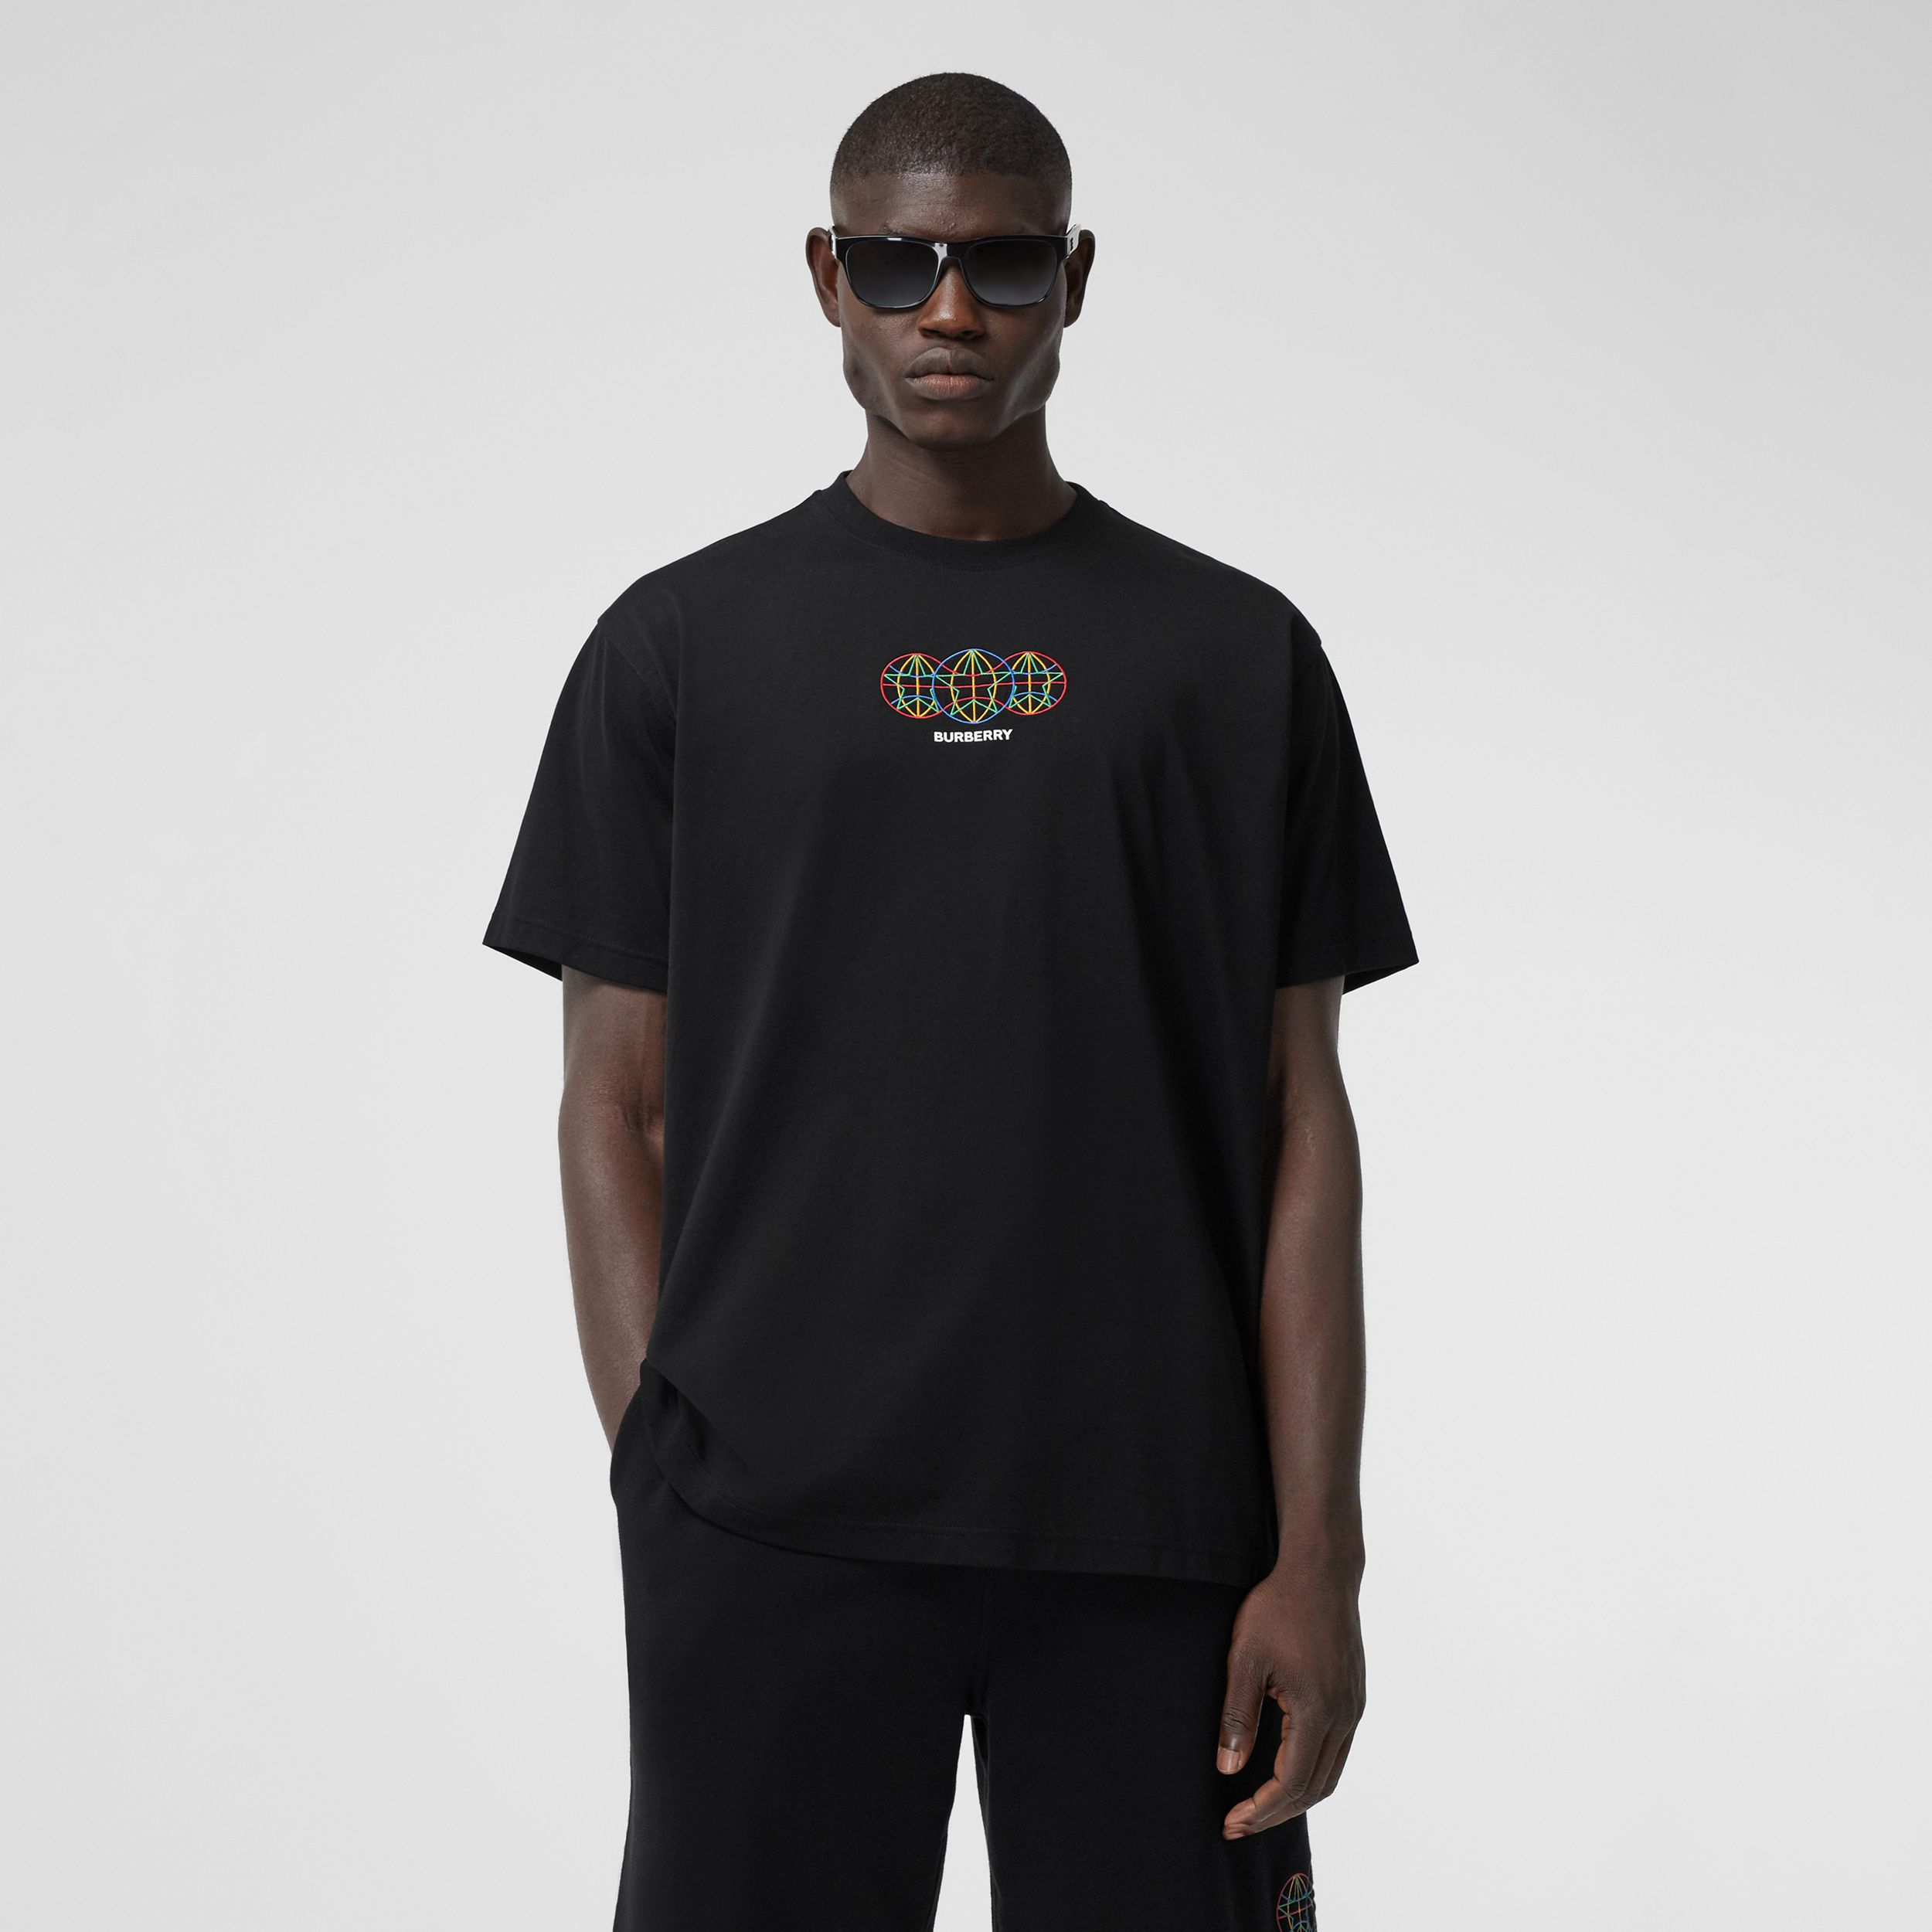 Embroidered Globe Graphic Cotton Oversized T-shirt in Black - Men | Burberry - 1